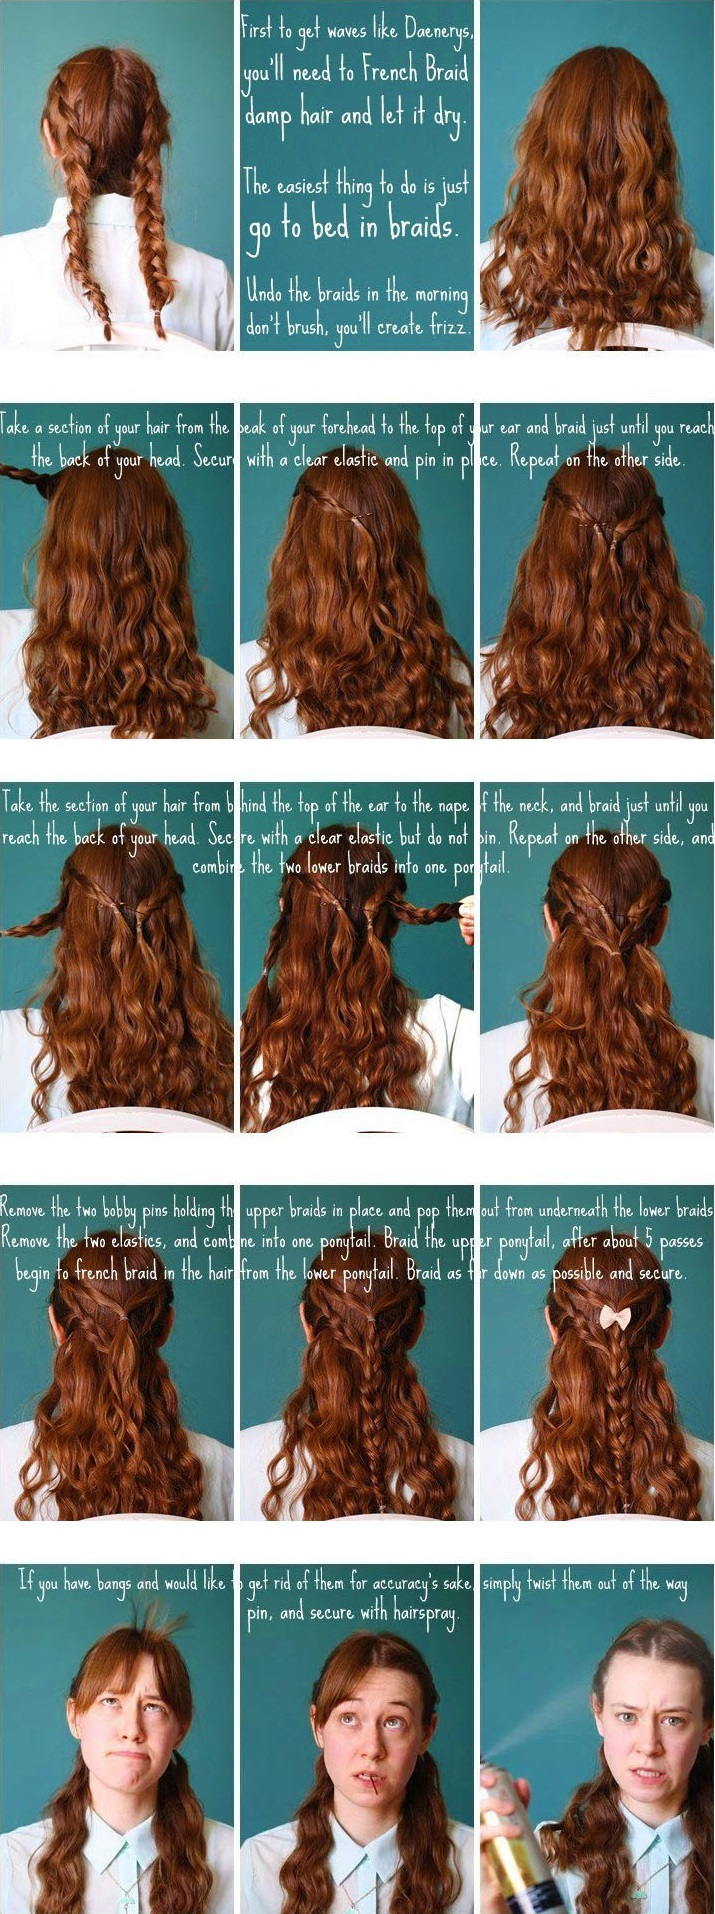 20 Easy Hairstyles For Women Whove Got No Time 7 Is A Game Changer  Architecture  Design